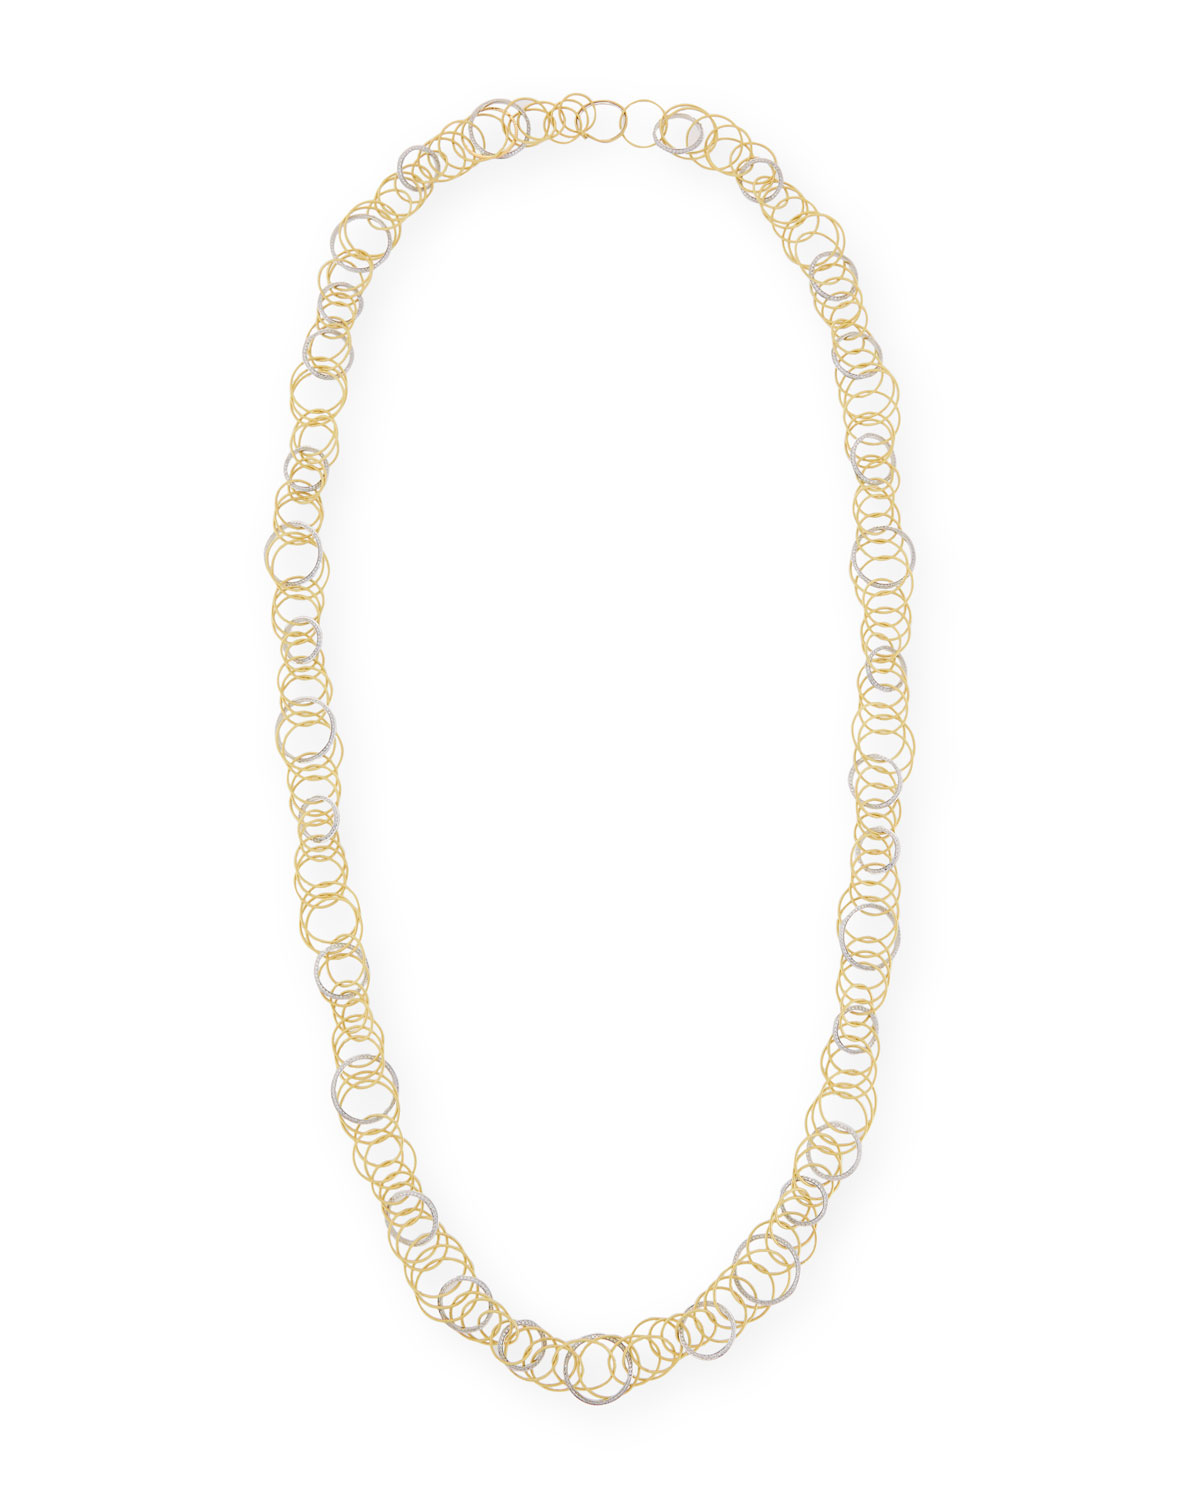 Hawaii Yellow/White Gold Long Necklace with Diamonds